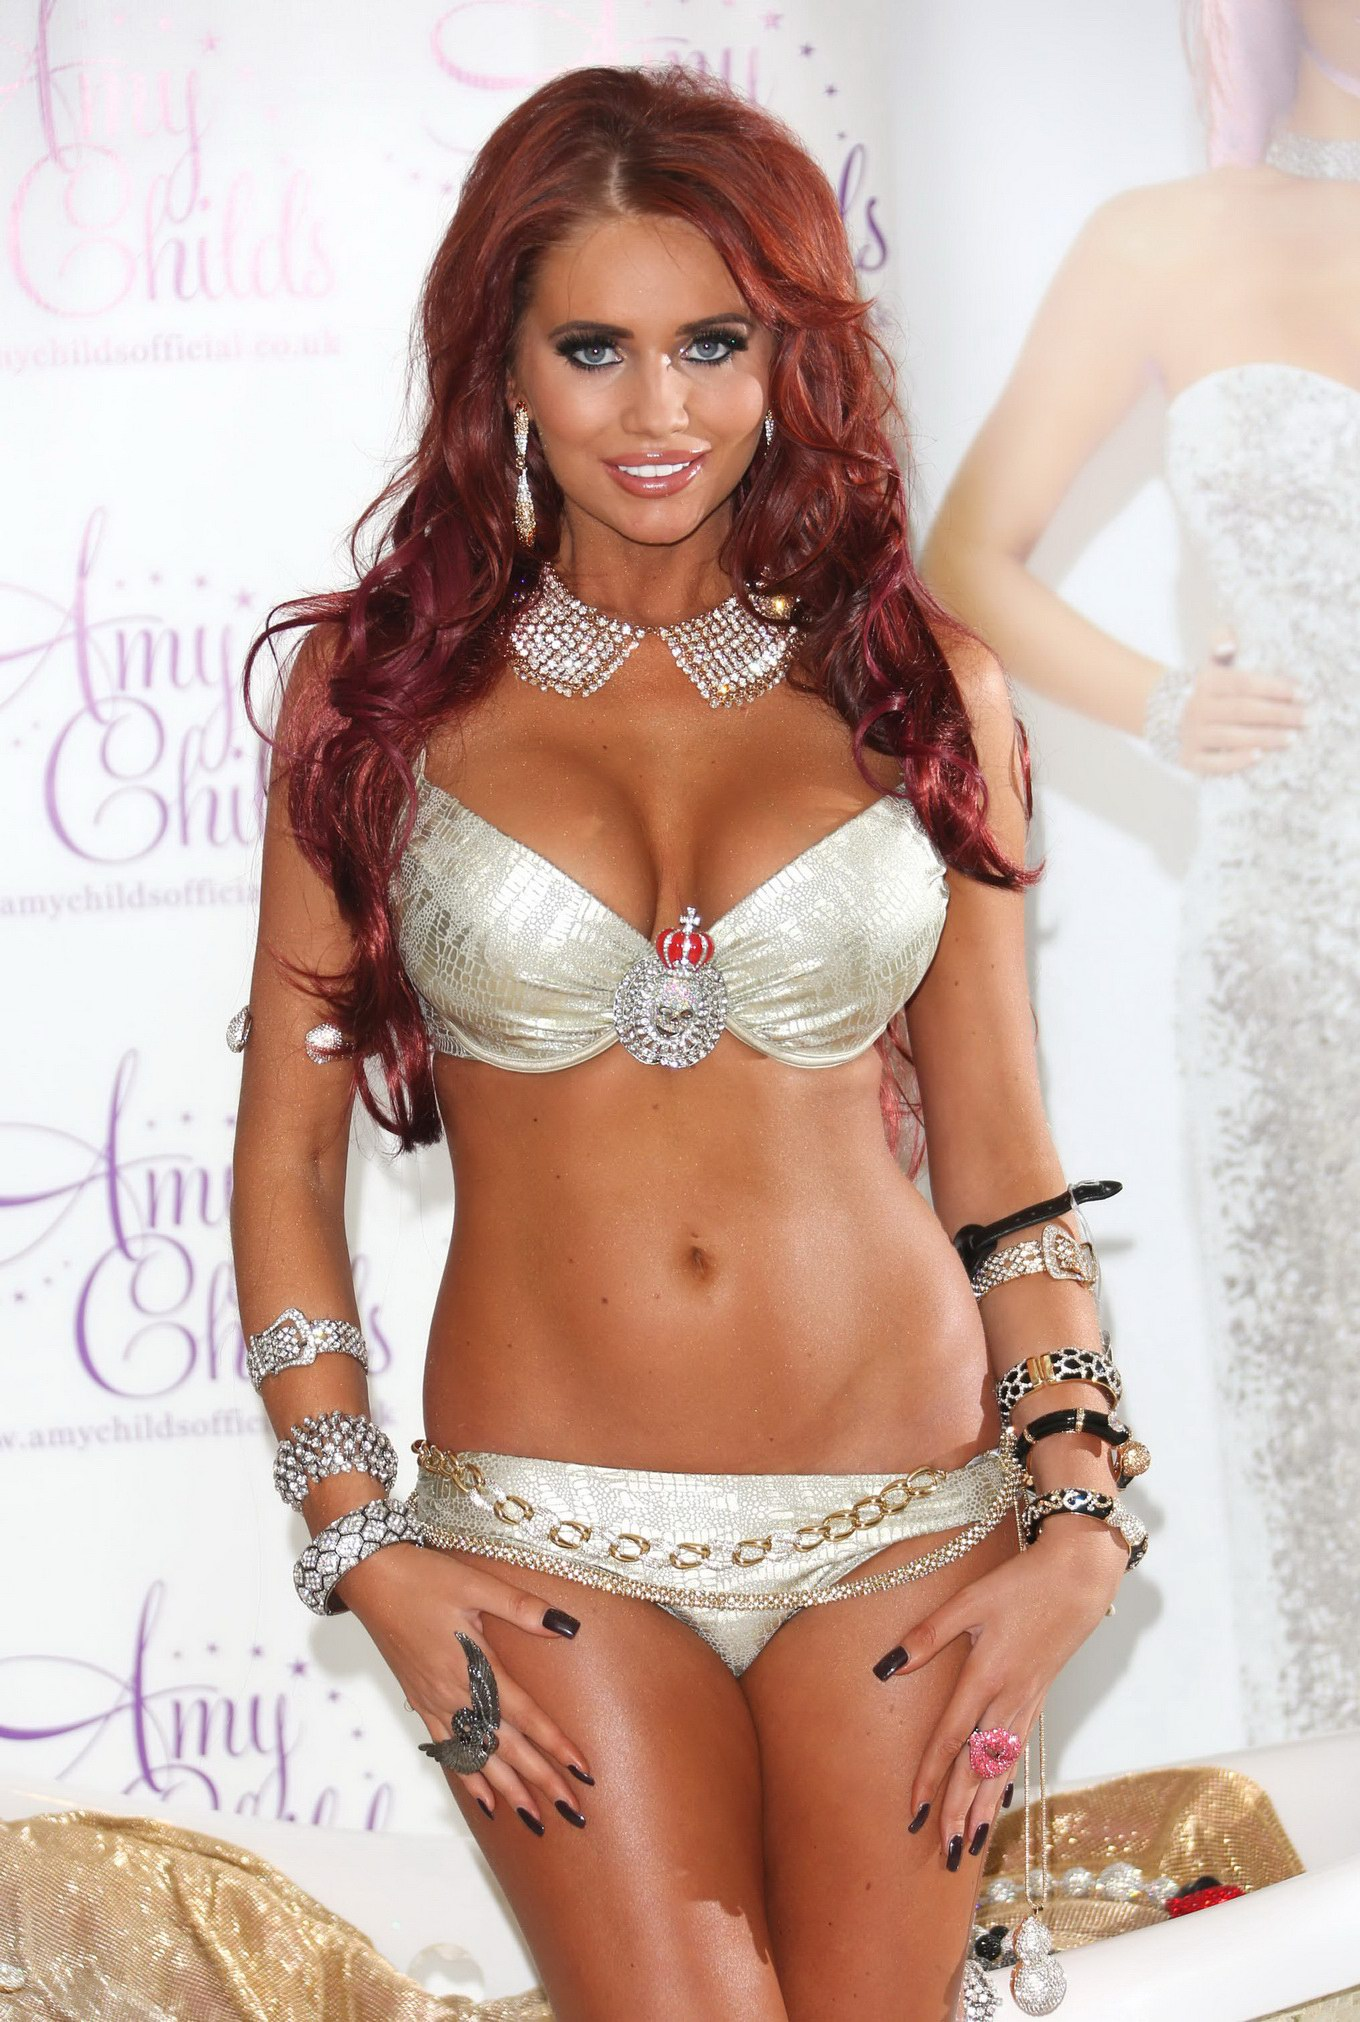 Pussy Amy Childs nude photos 2019